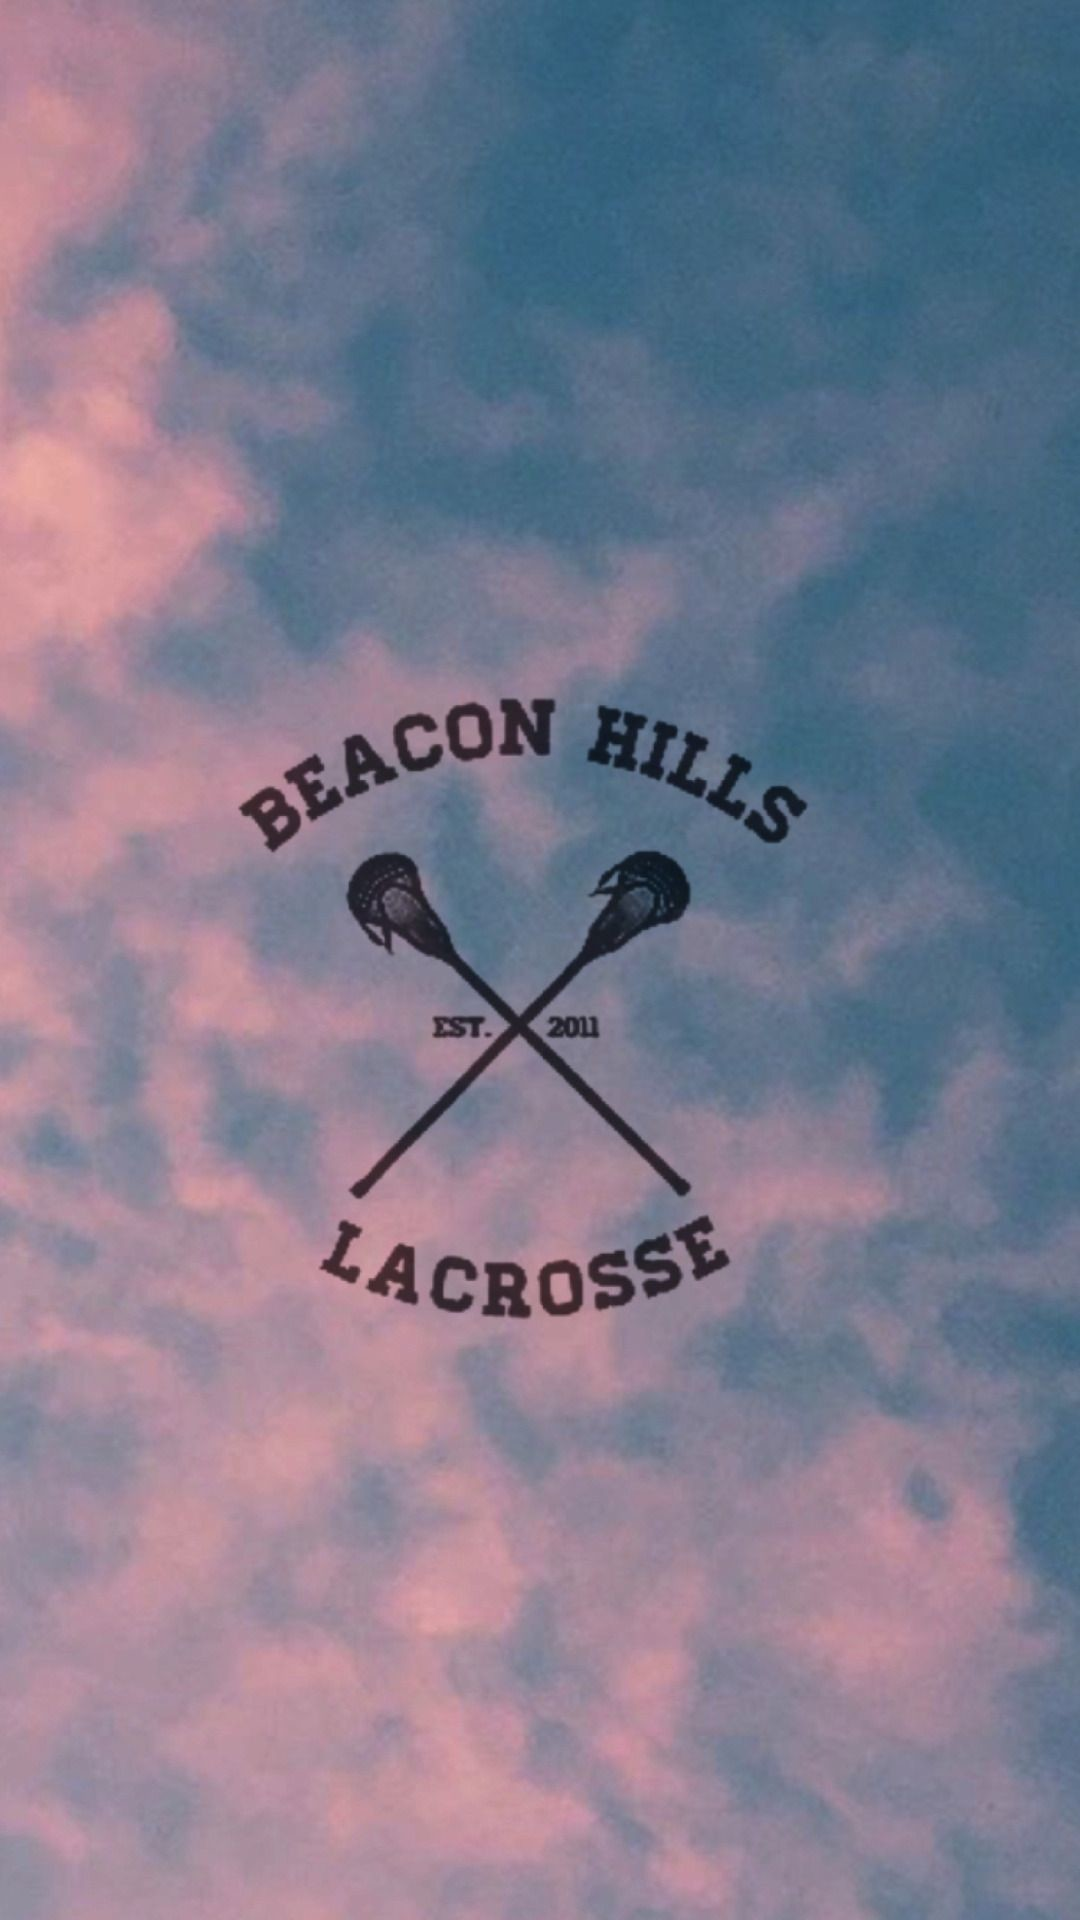 Res: 1080x1920, #beaconhill #teenwolf #lacrosse @oxmariieee